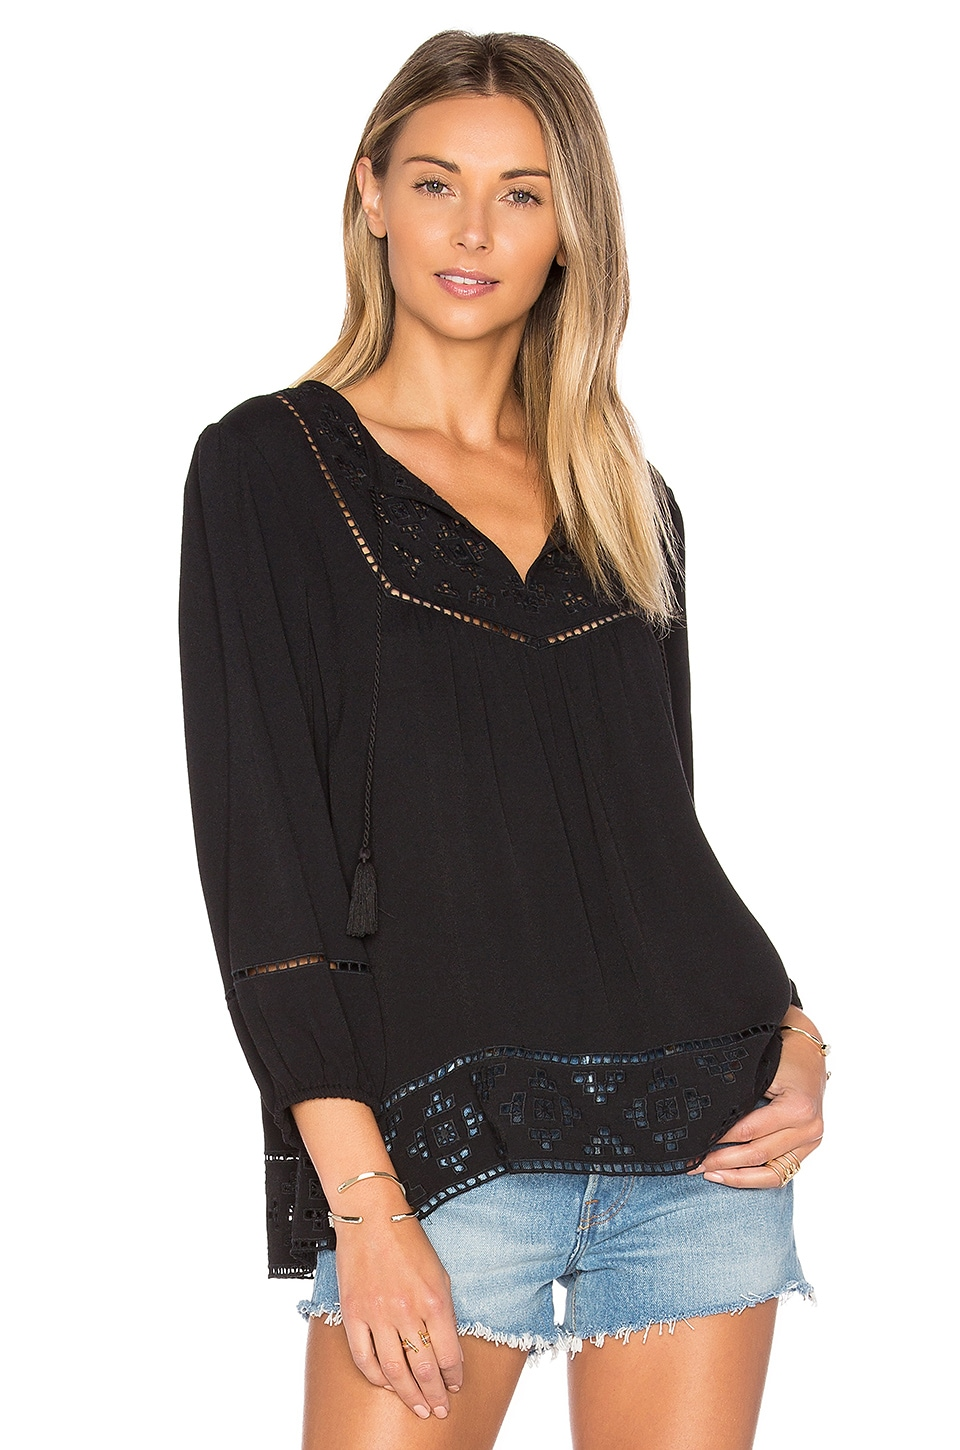 Joie Cathora Blouse in Caviar